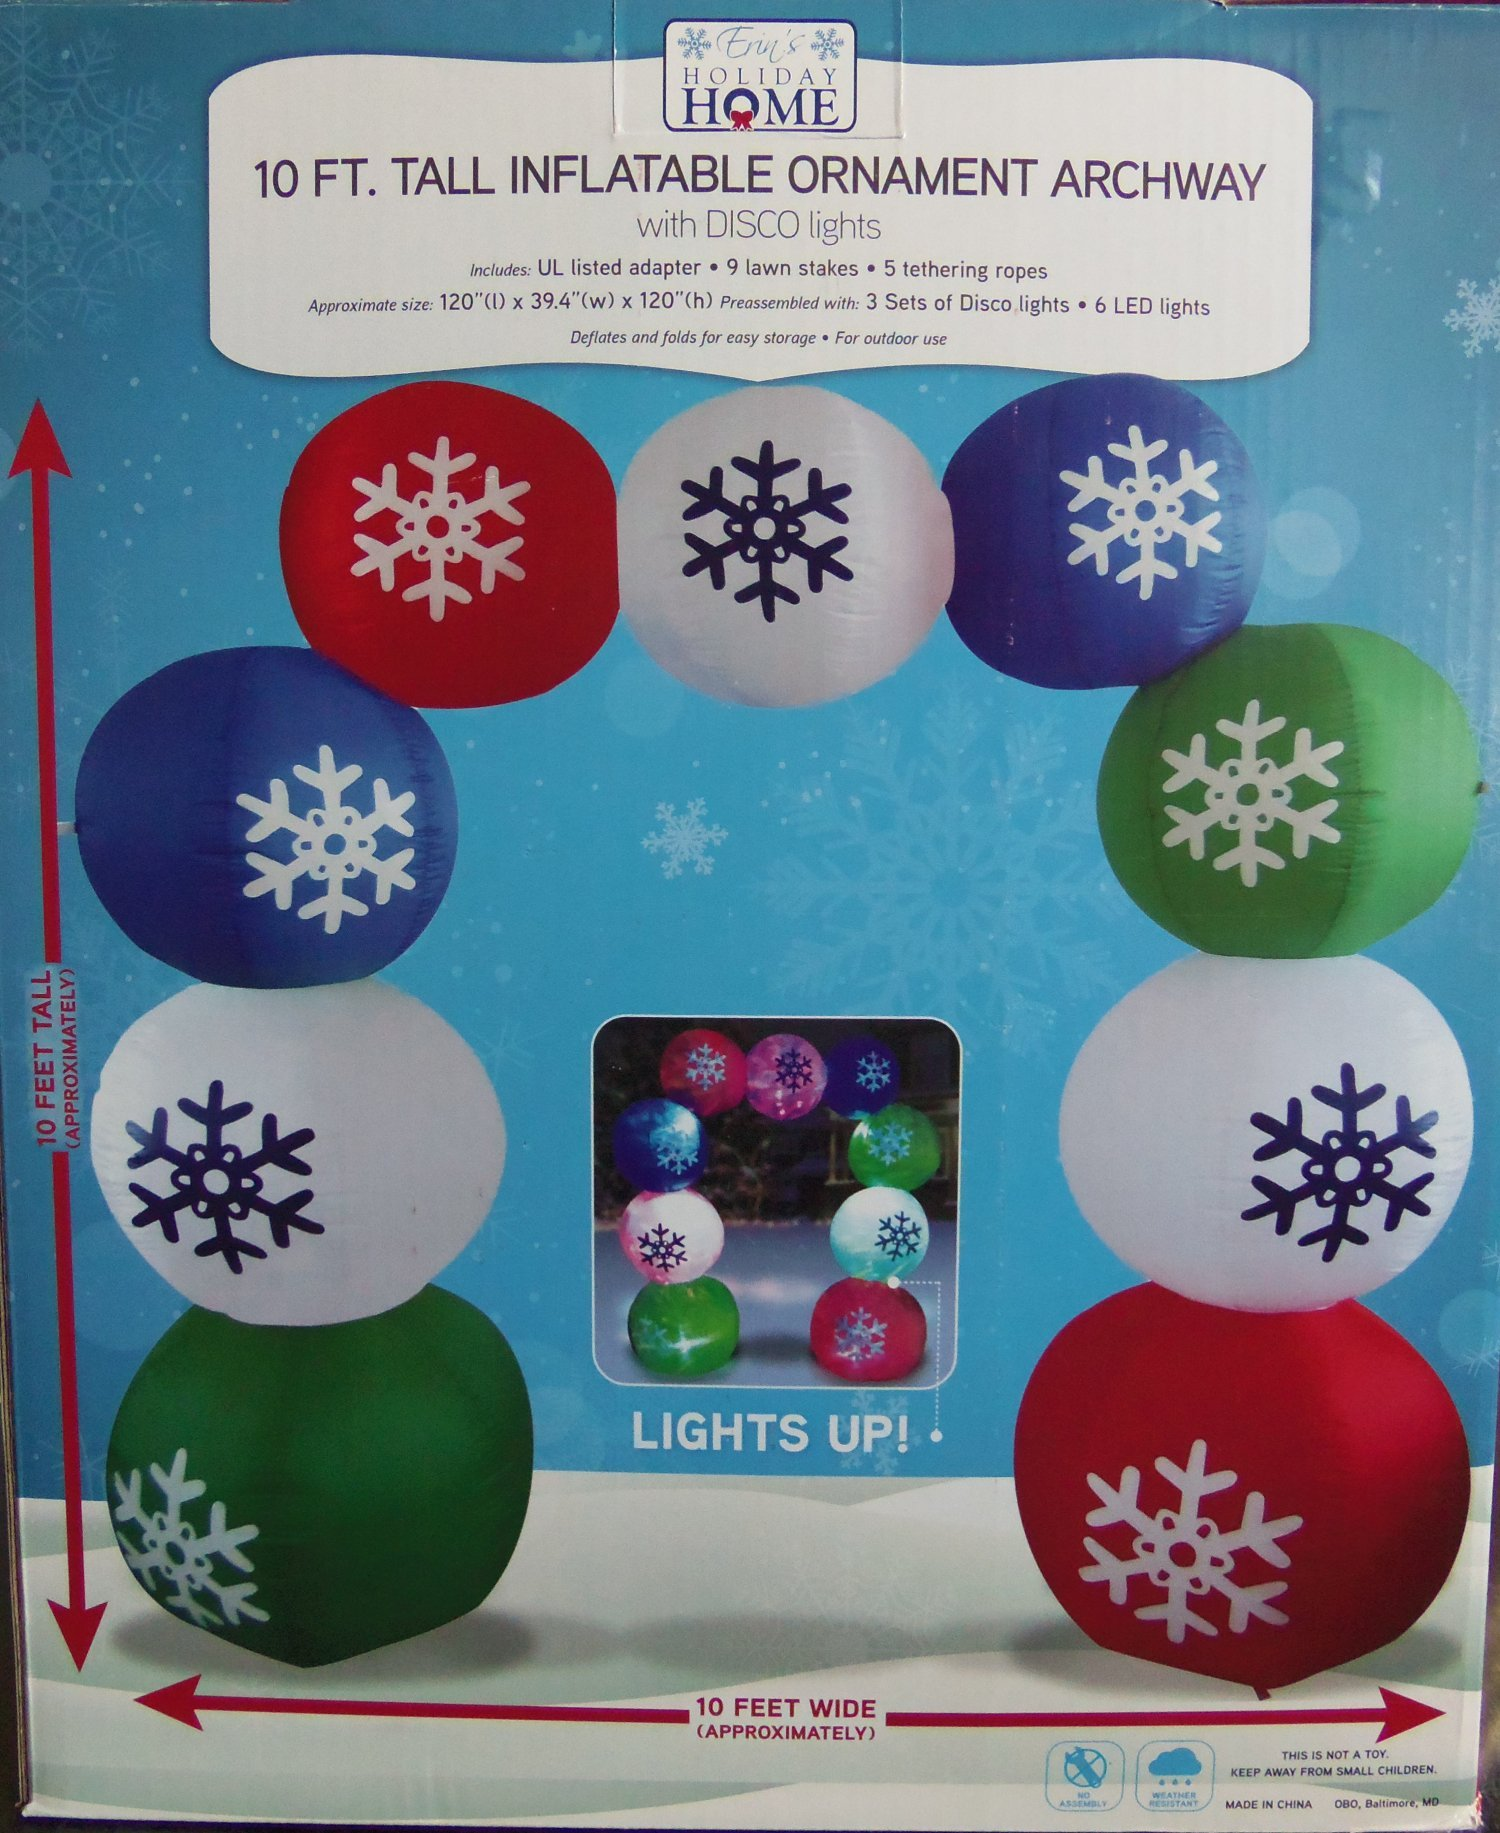 Inflatable Illuminated Air-blown Ornament Arch with Disco Lights - 10' Tall